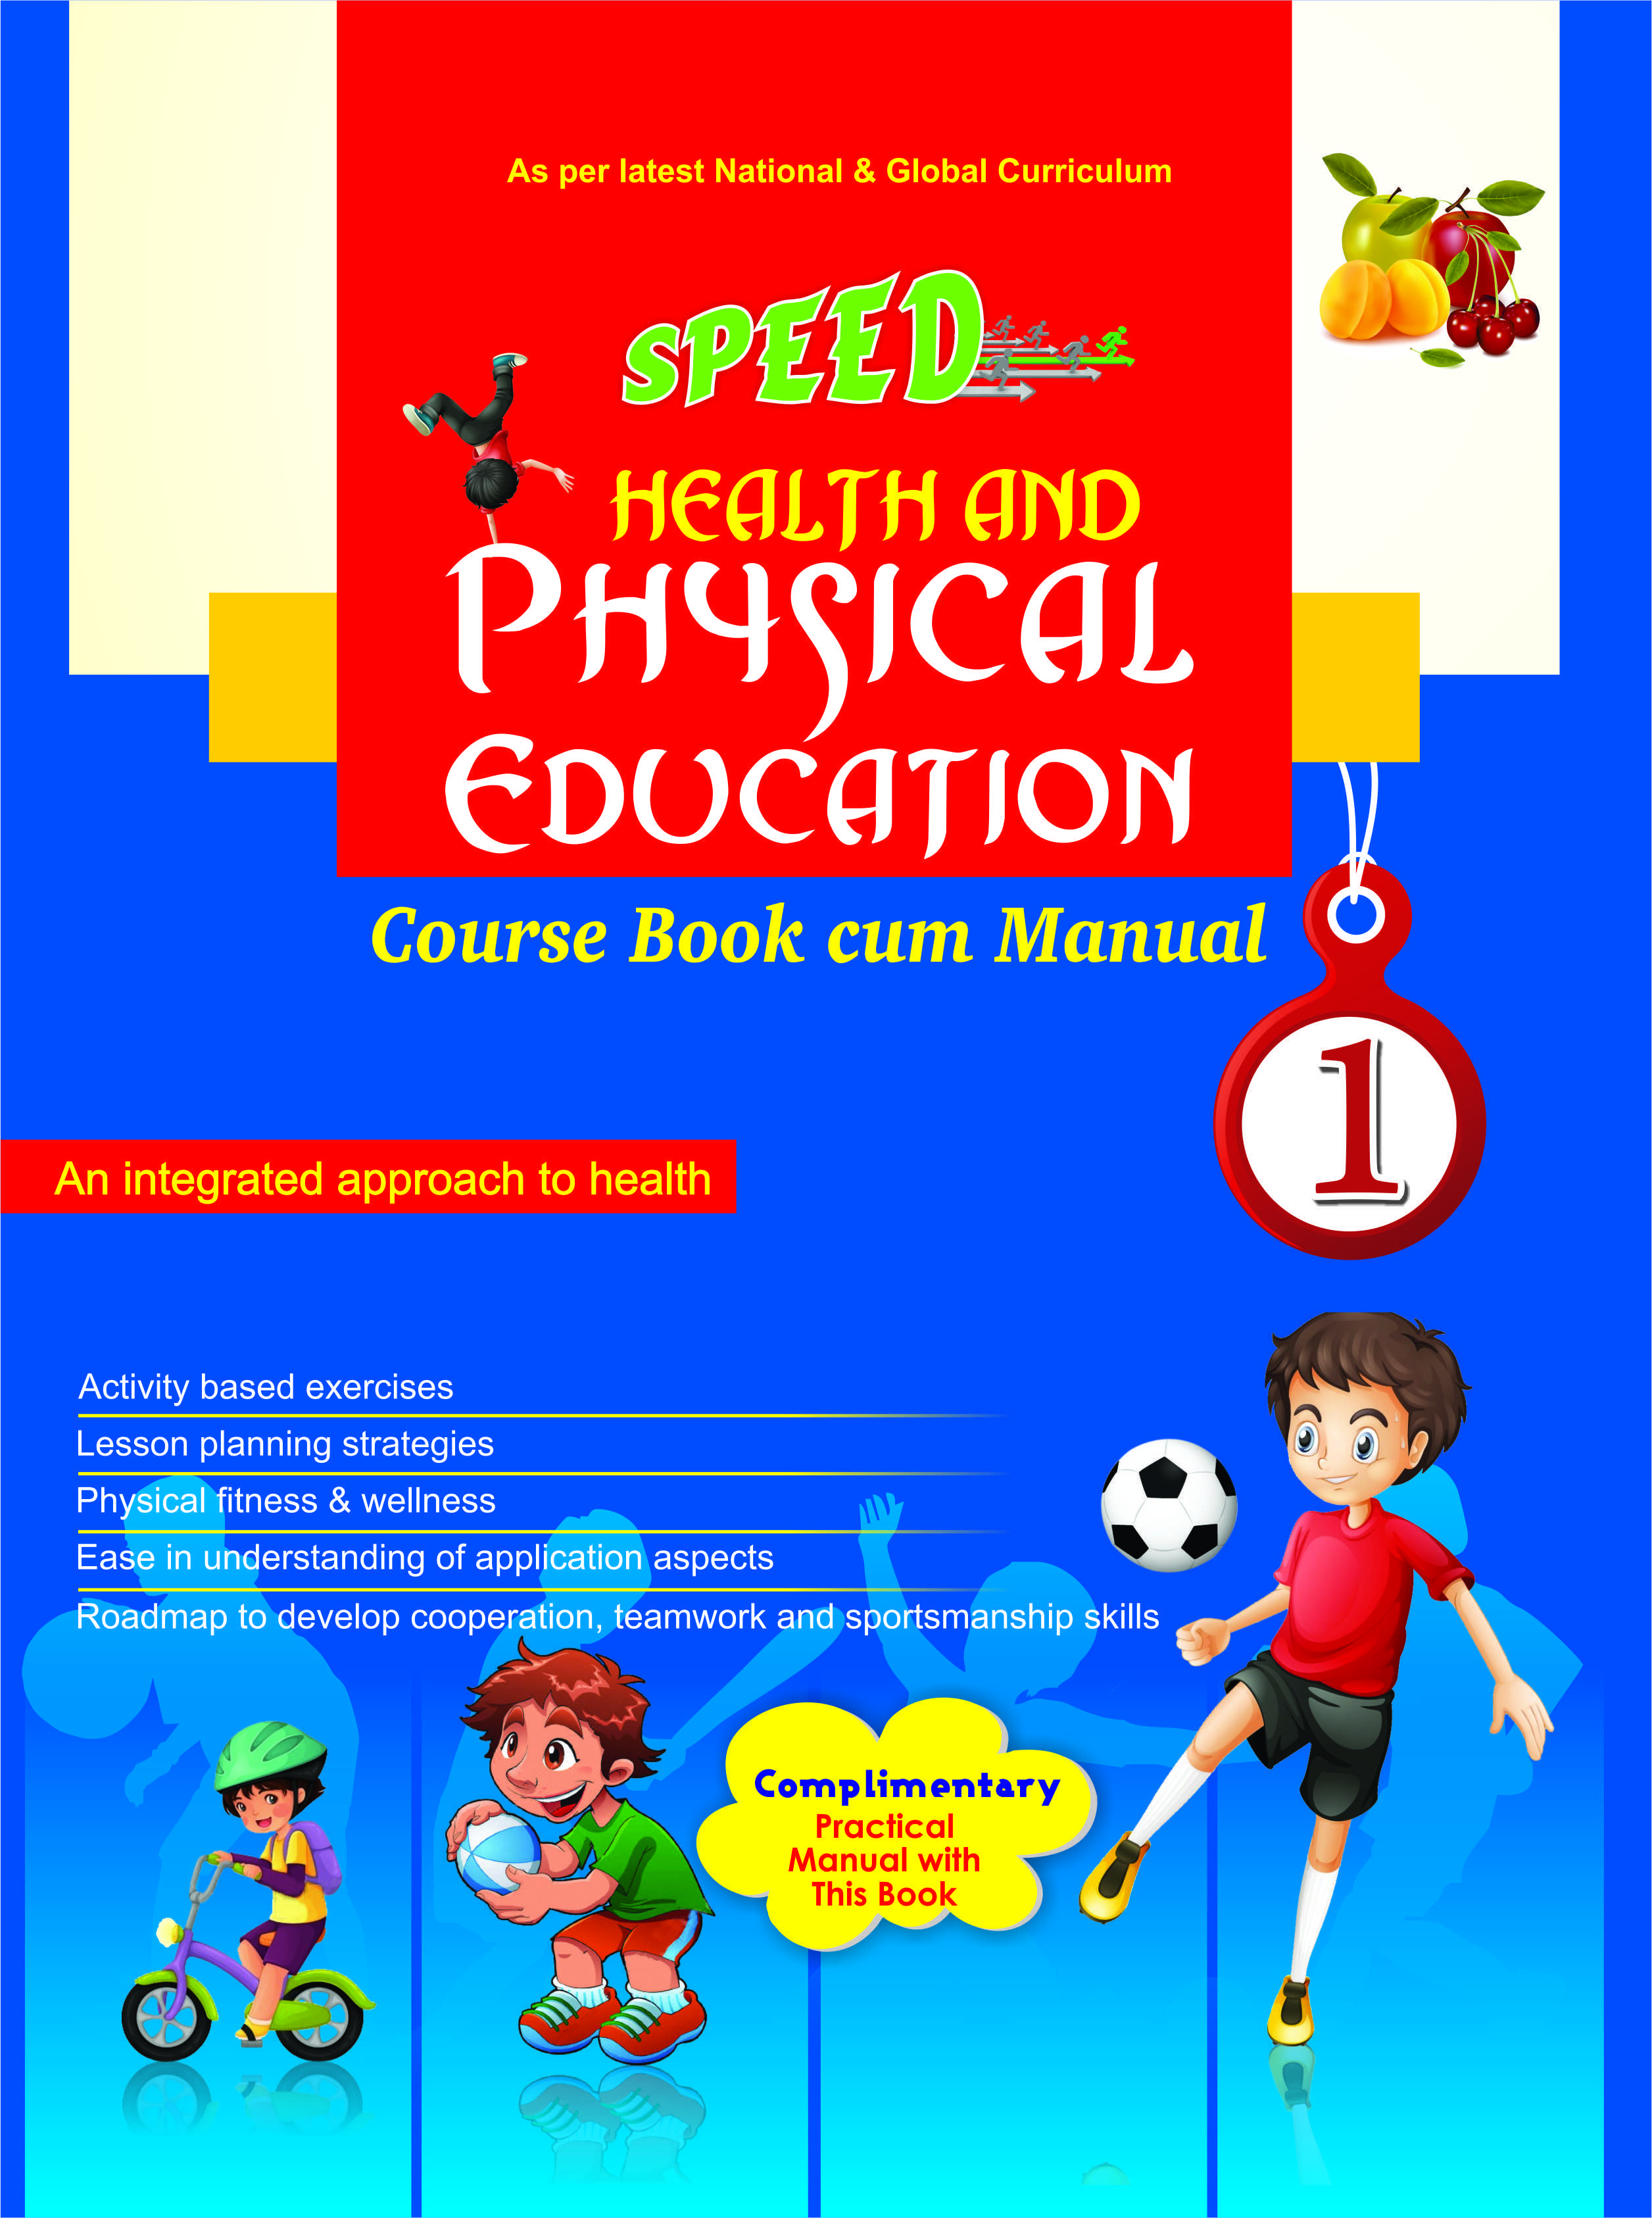 Speed health physical education for class 1 speed health speed health physical education for class 1 malvernweather Image collections